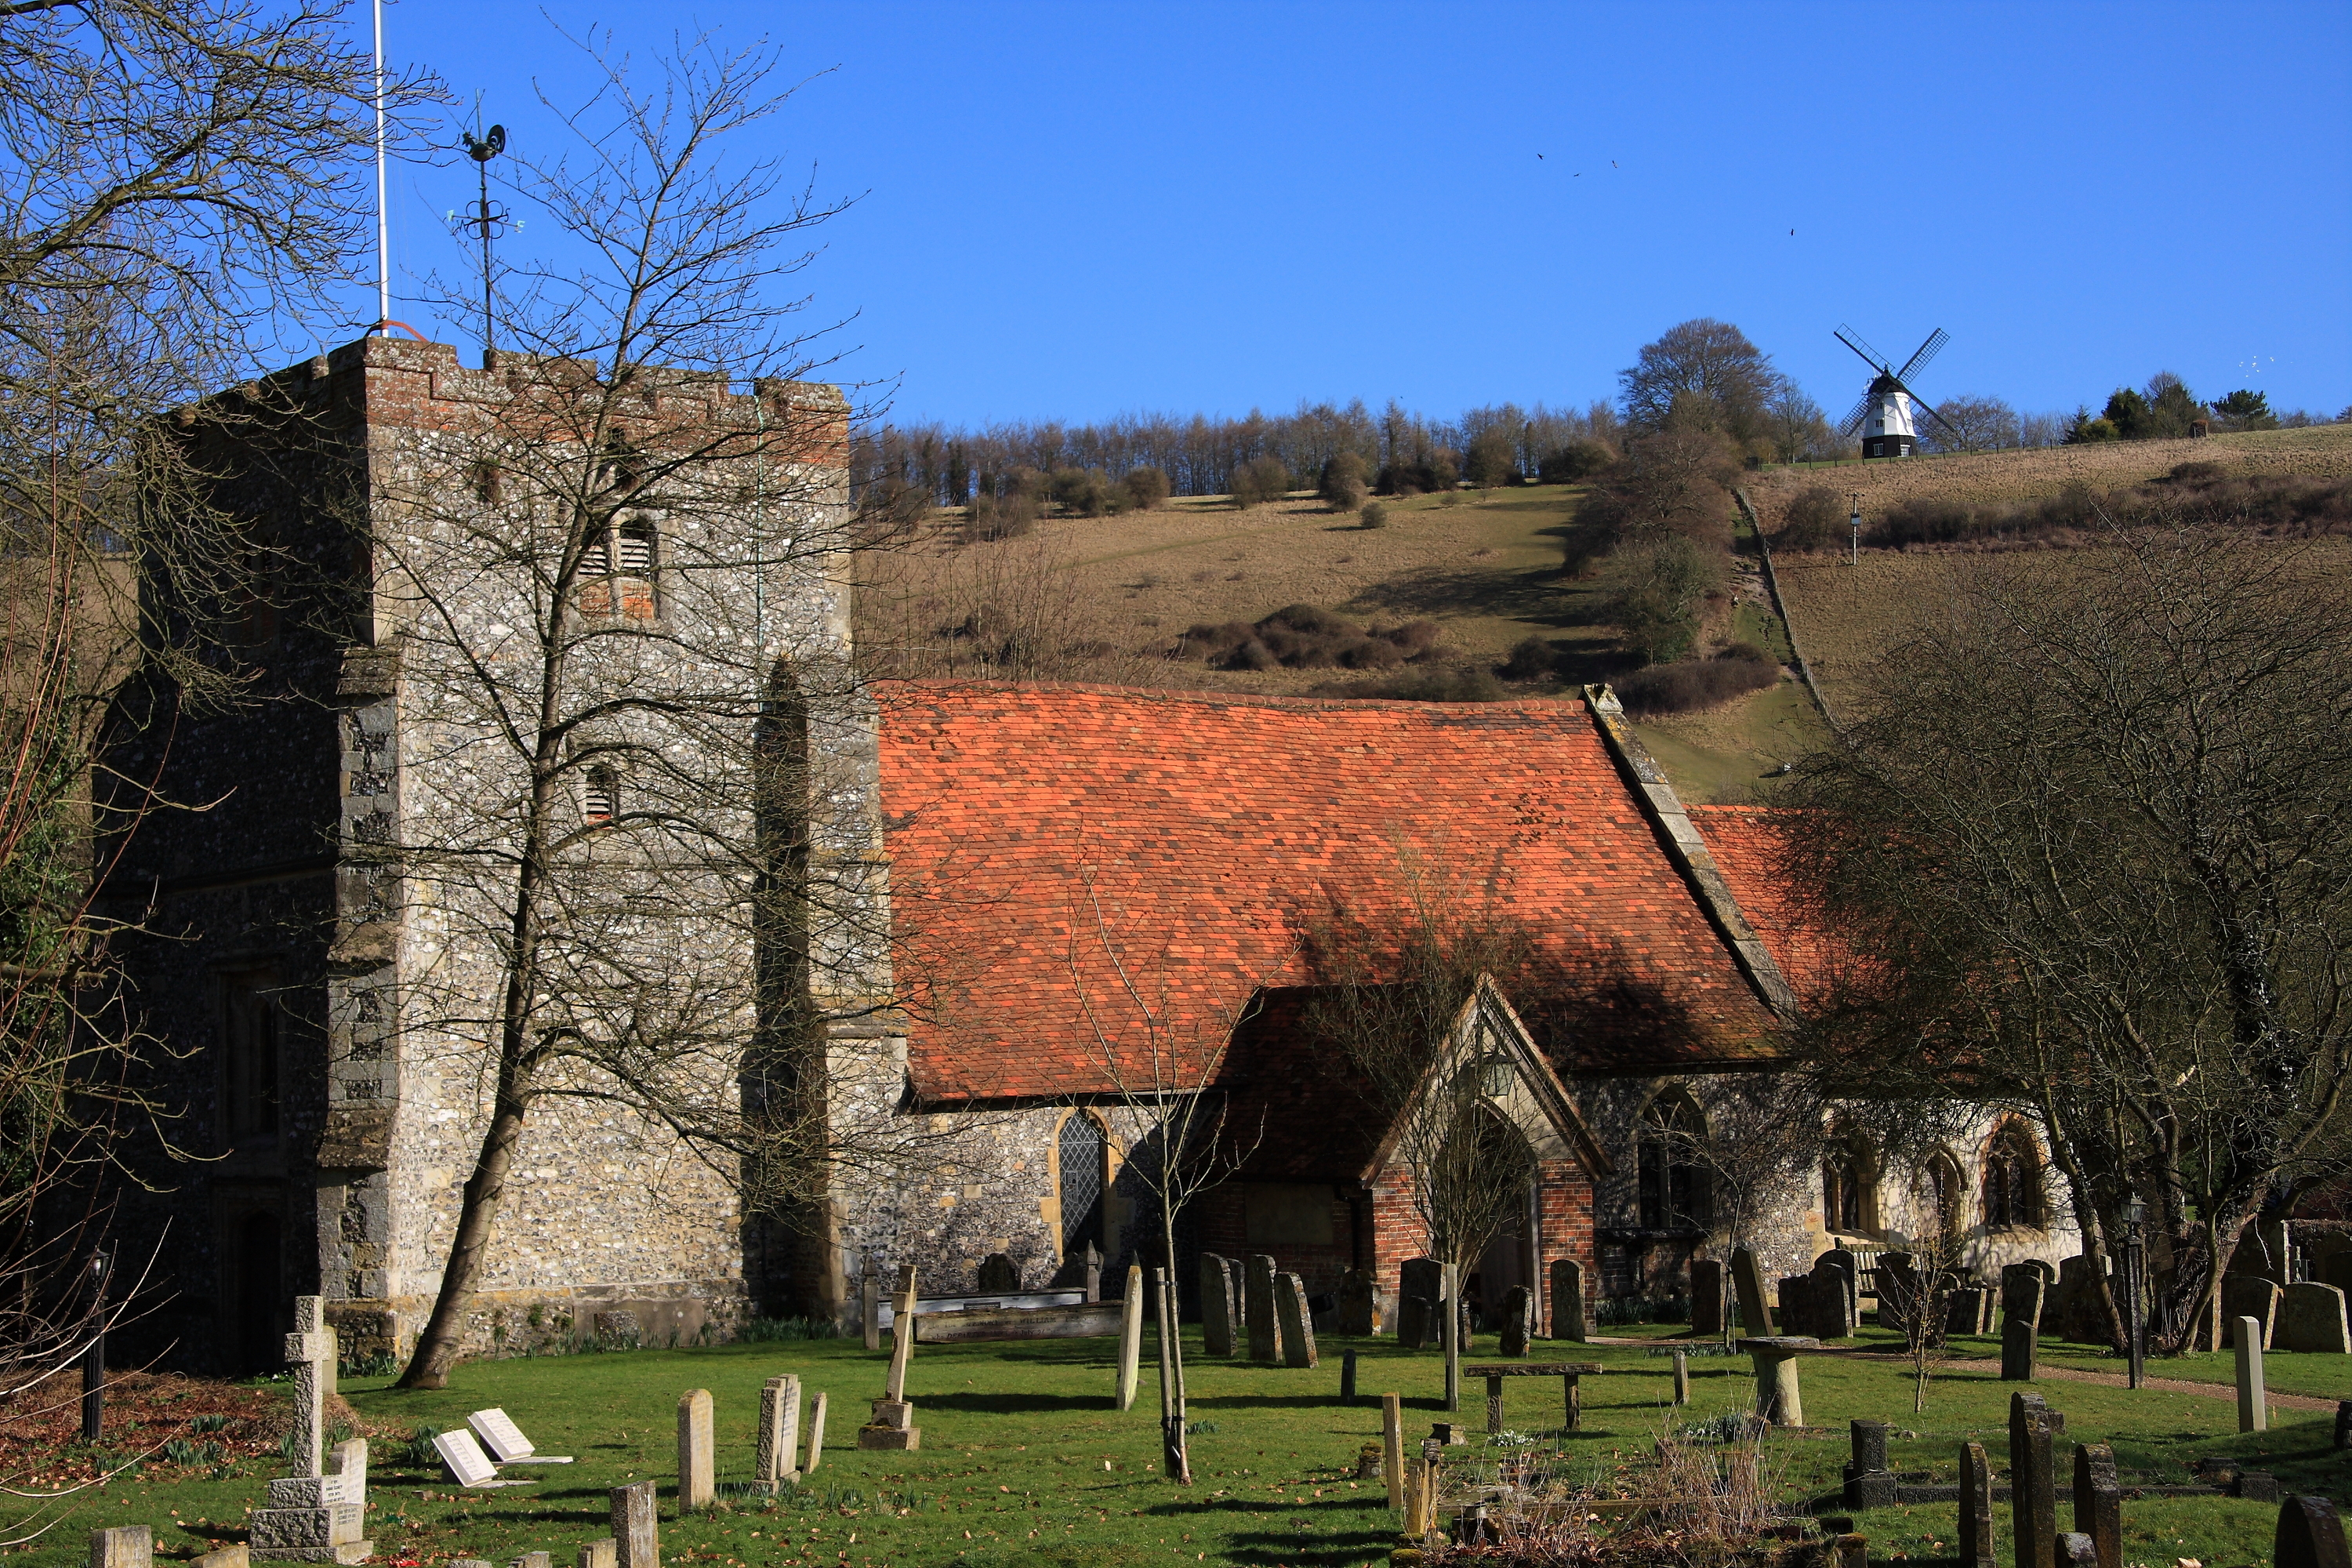 St. Mary's Church at Turville in south Buckinghamshire England.